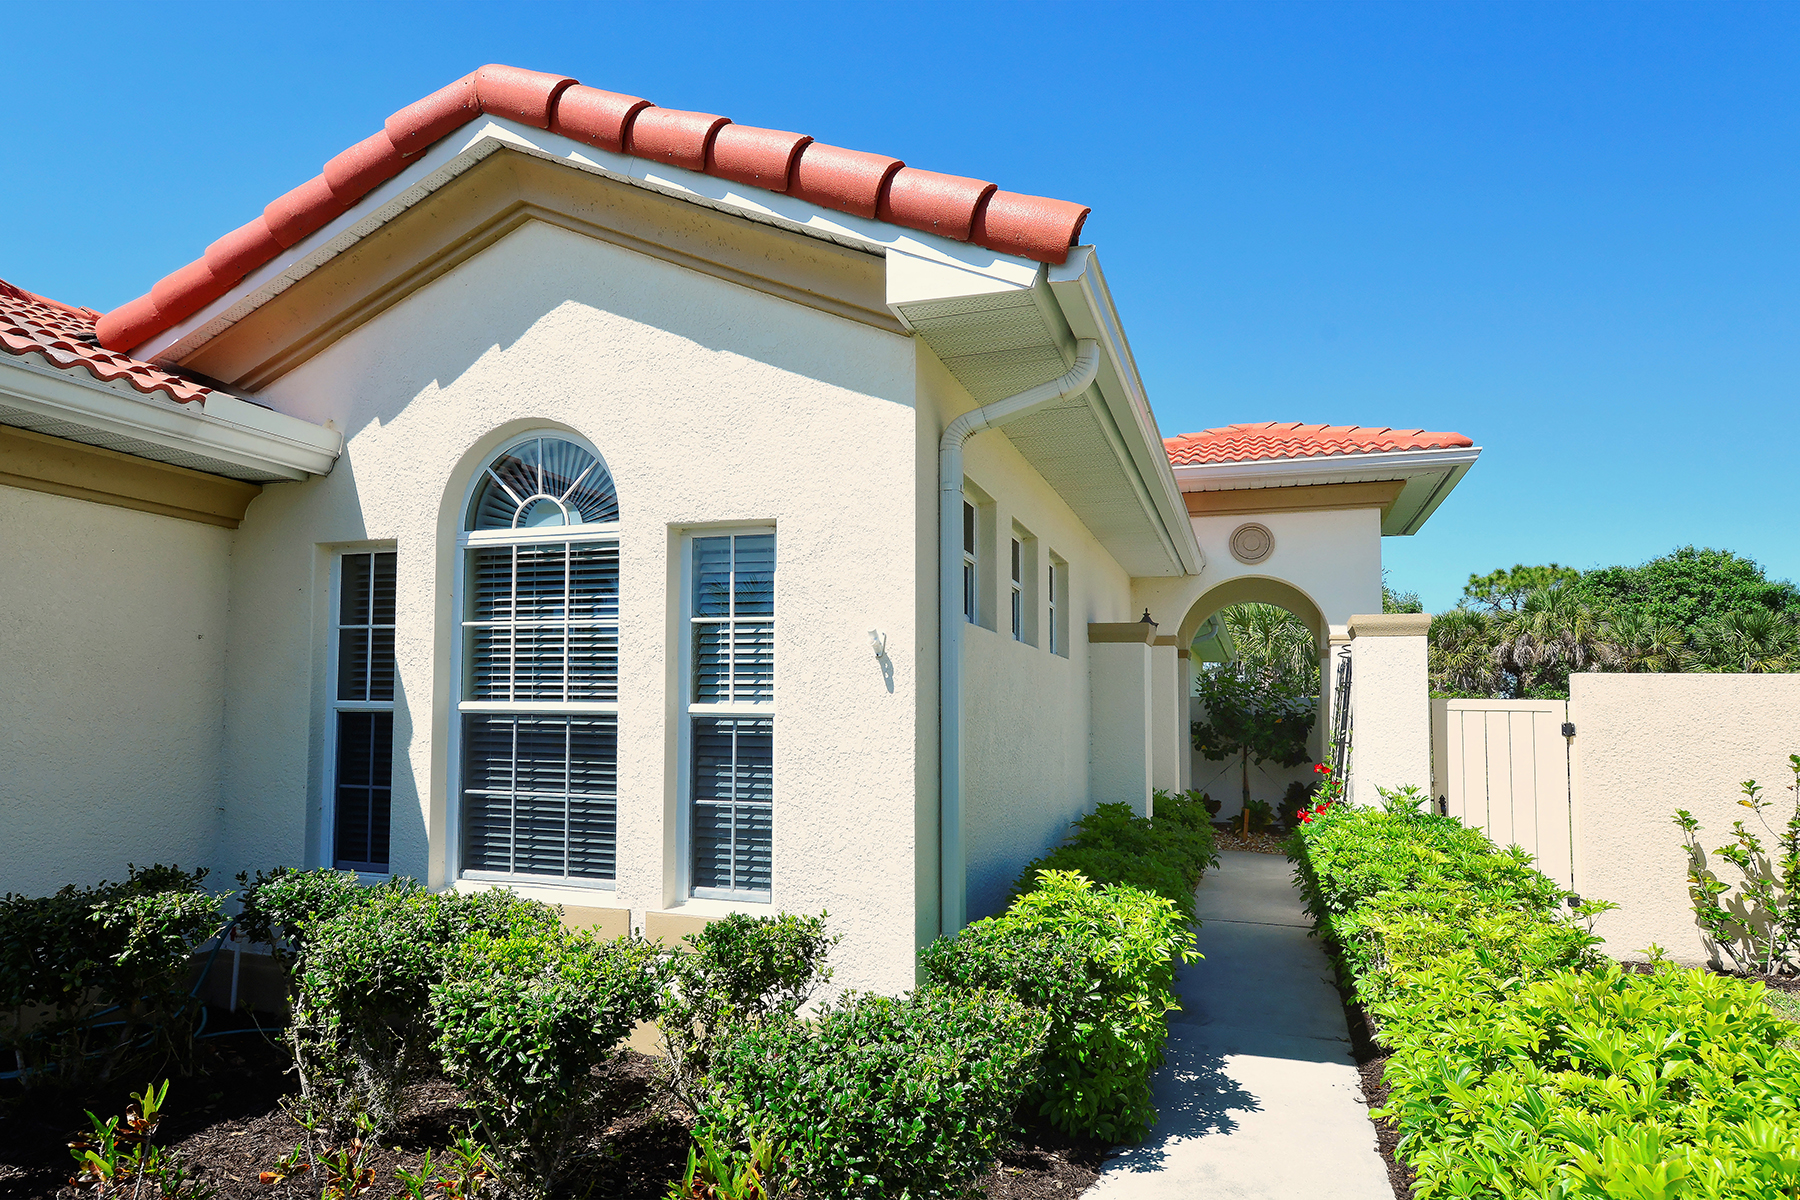 Single Family Home for Sale at VENETIAN GOLF & RIVER CLUB 345 Mestre Pl, North Venice, Florida, 34275 United States